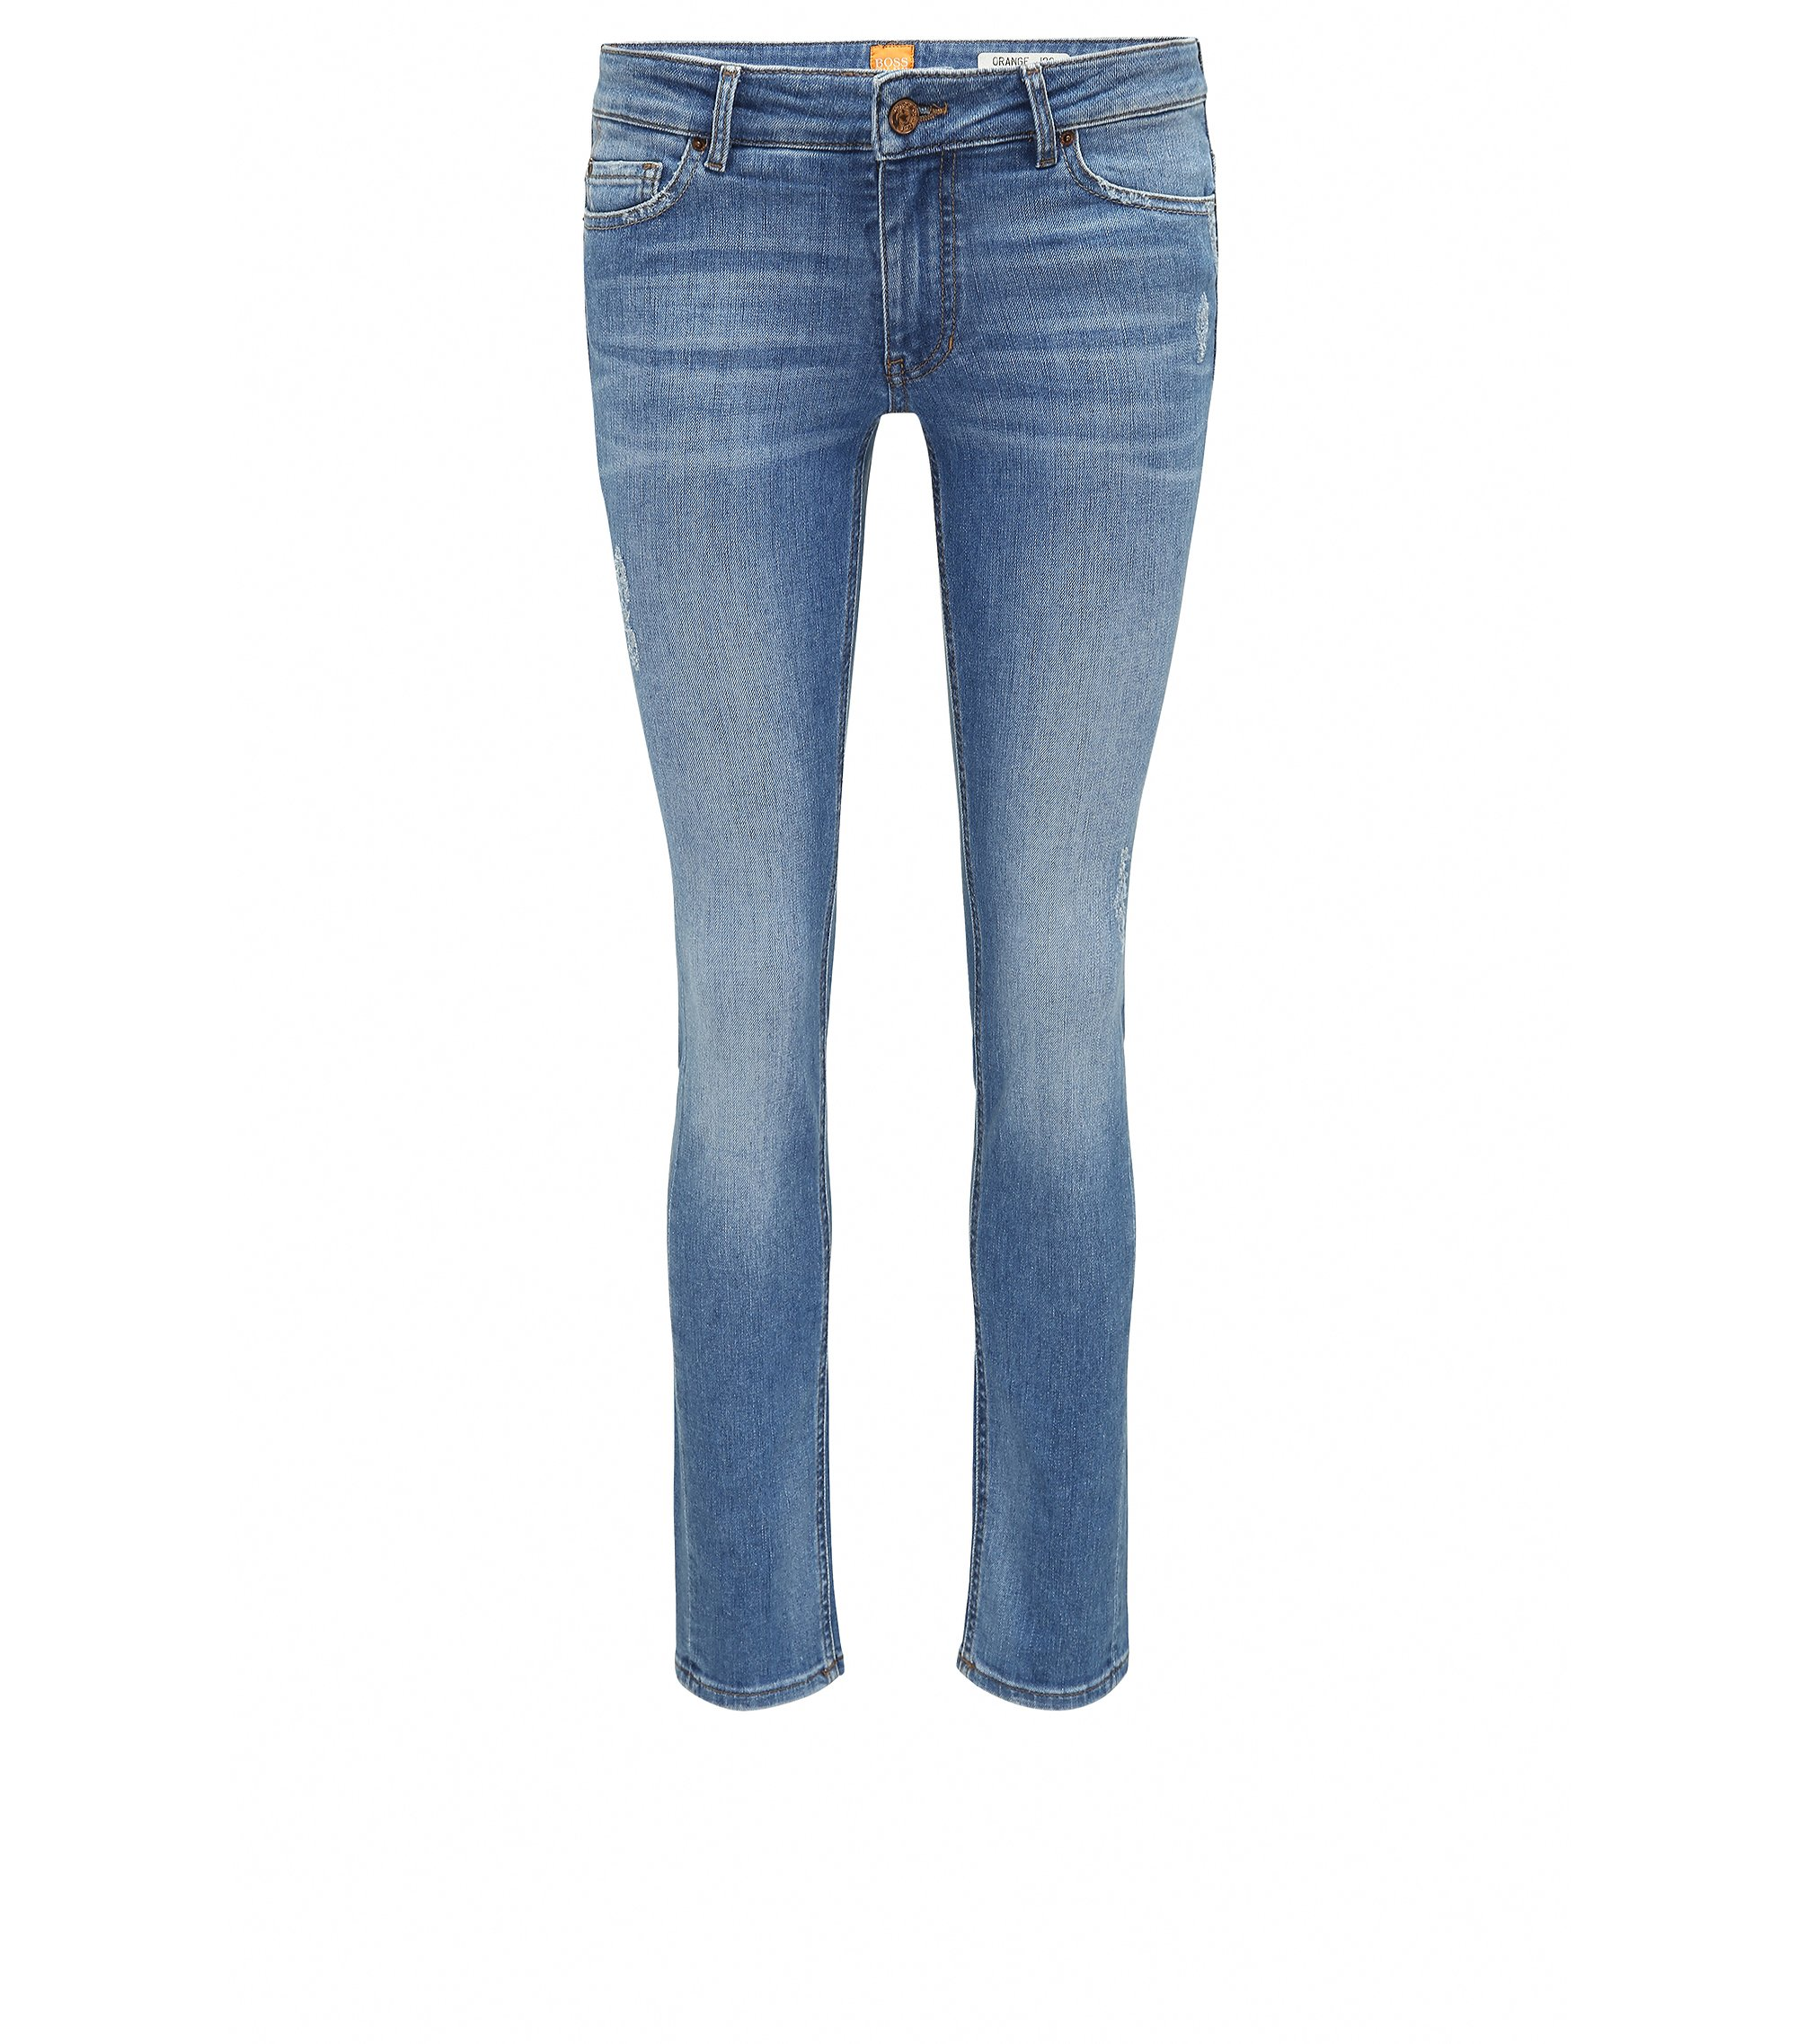 Slim-Fit Jeans aus komfortablem Stretch-Denim im Destroyed-Look , Blau